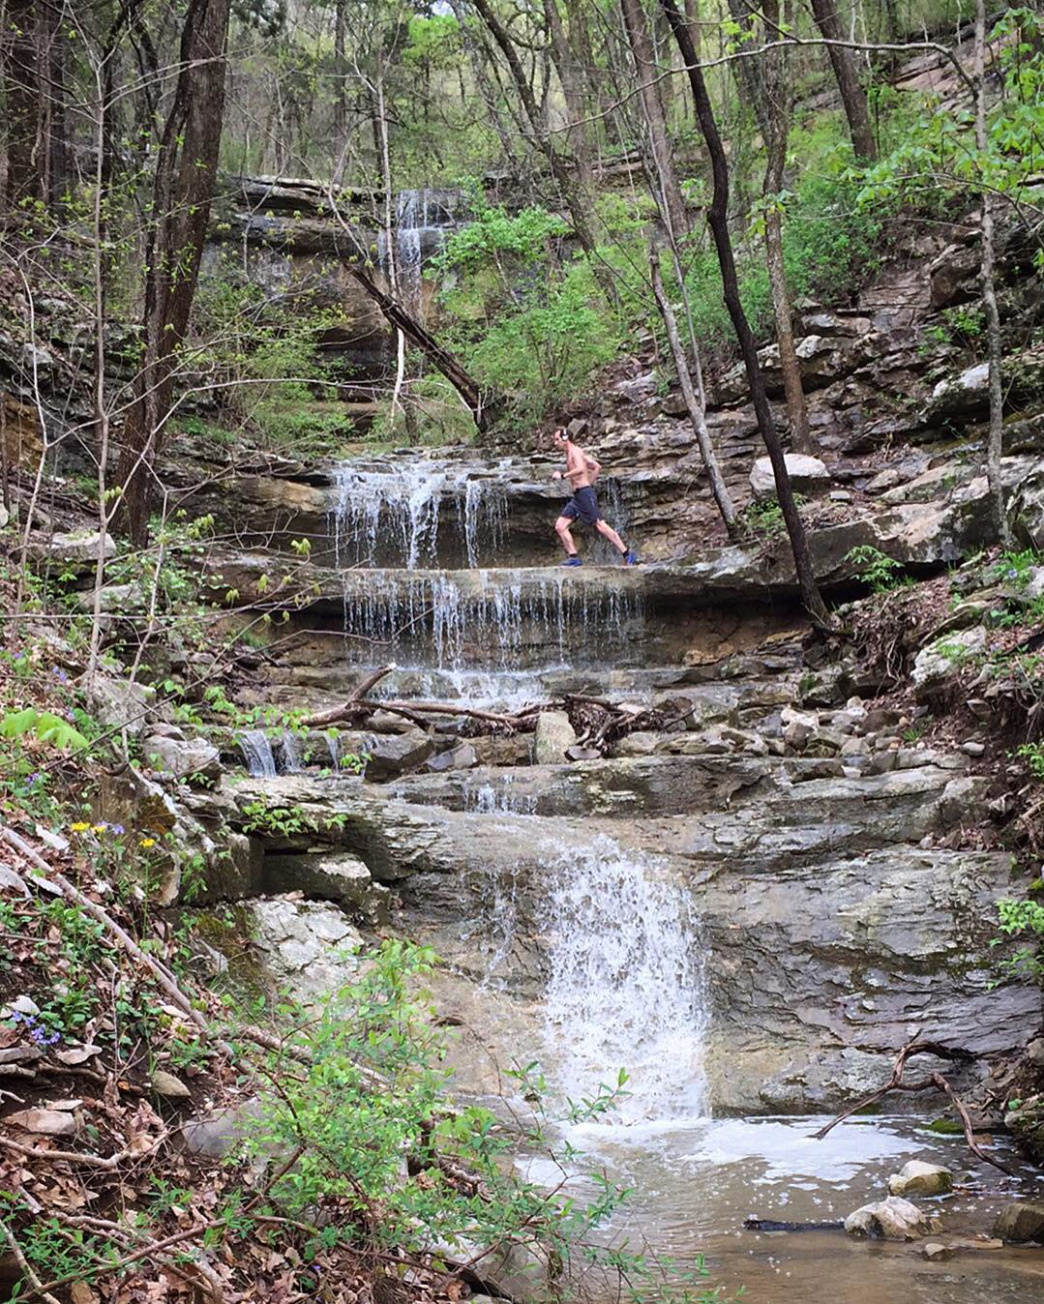 A runner crosses Dry Falls on Waterline Trail at Monte Sano Preserve.